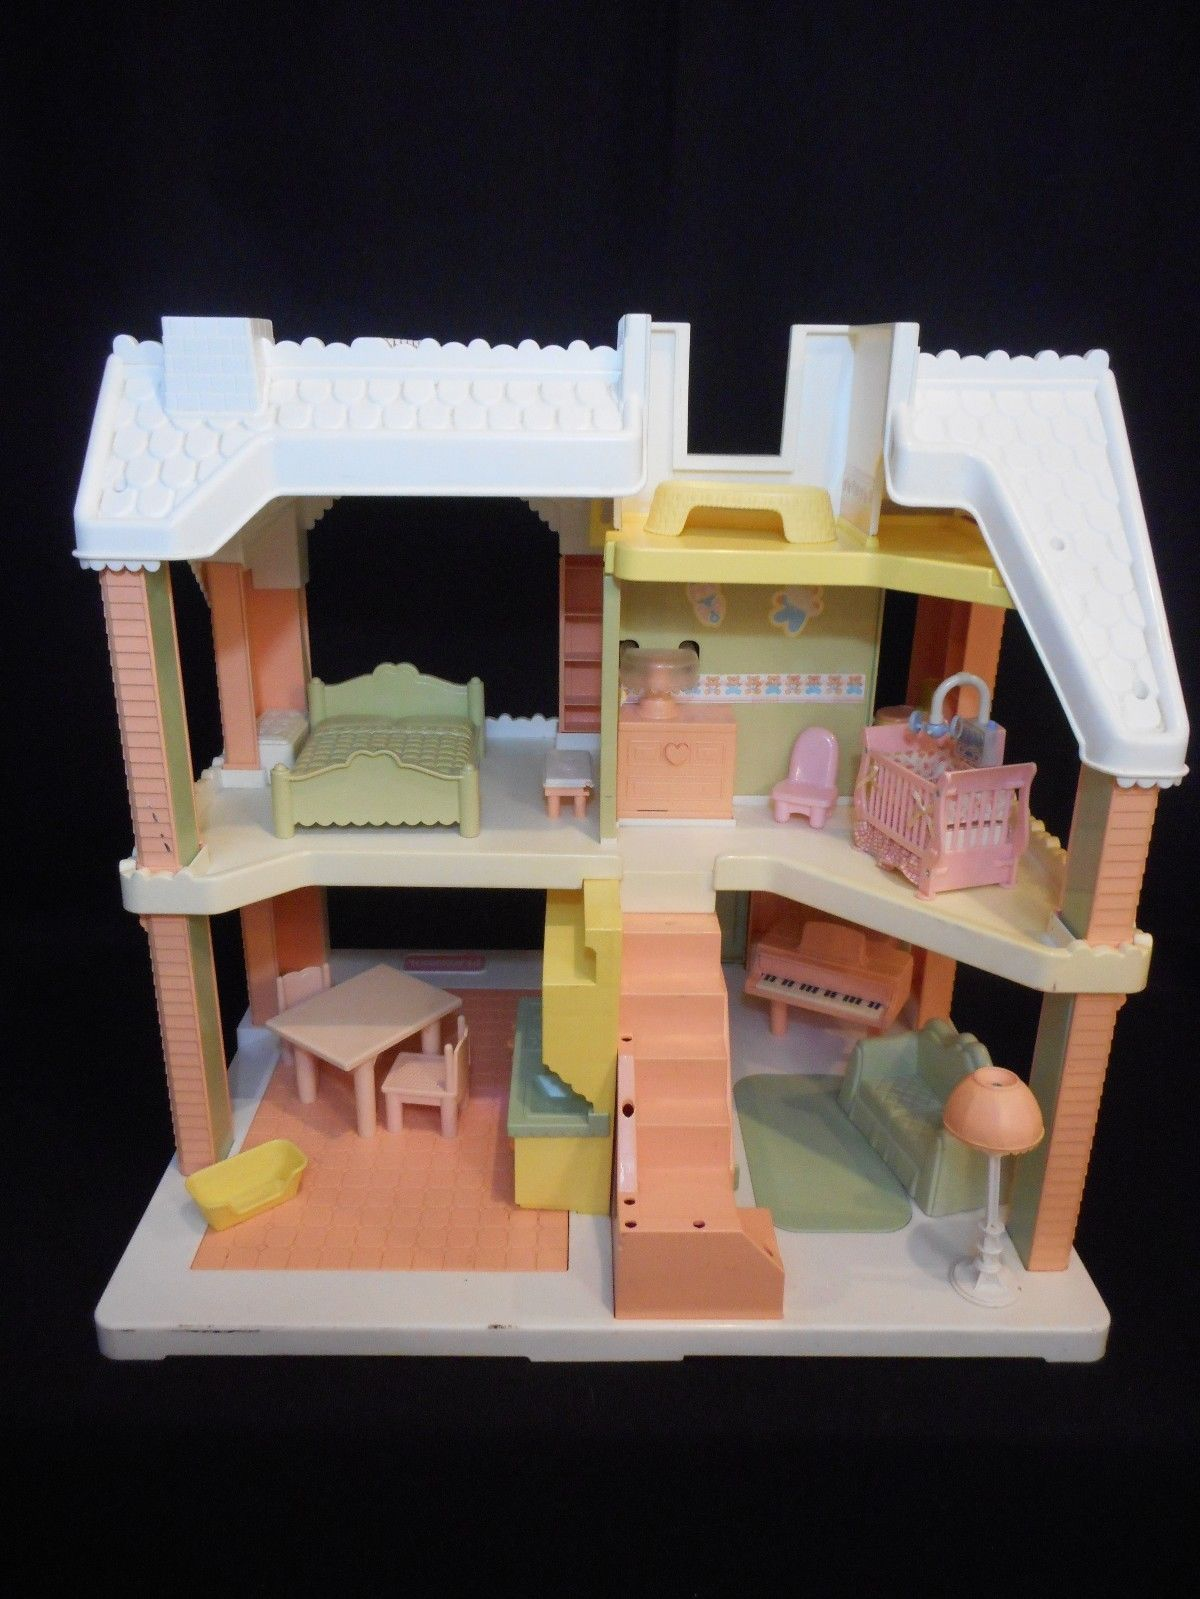 1991 Playskool VICTORIAN DOLLHOUSE pnk white with furniture Grd Piano Couch Bed image 2